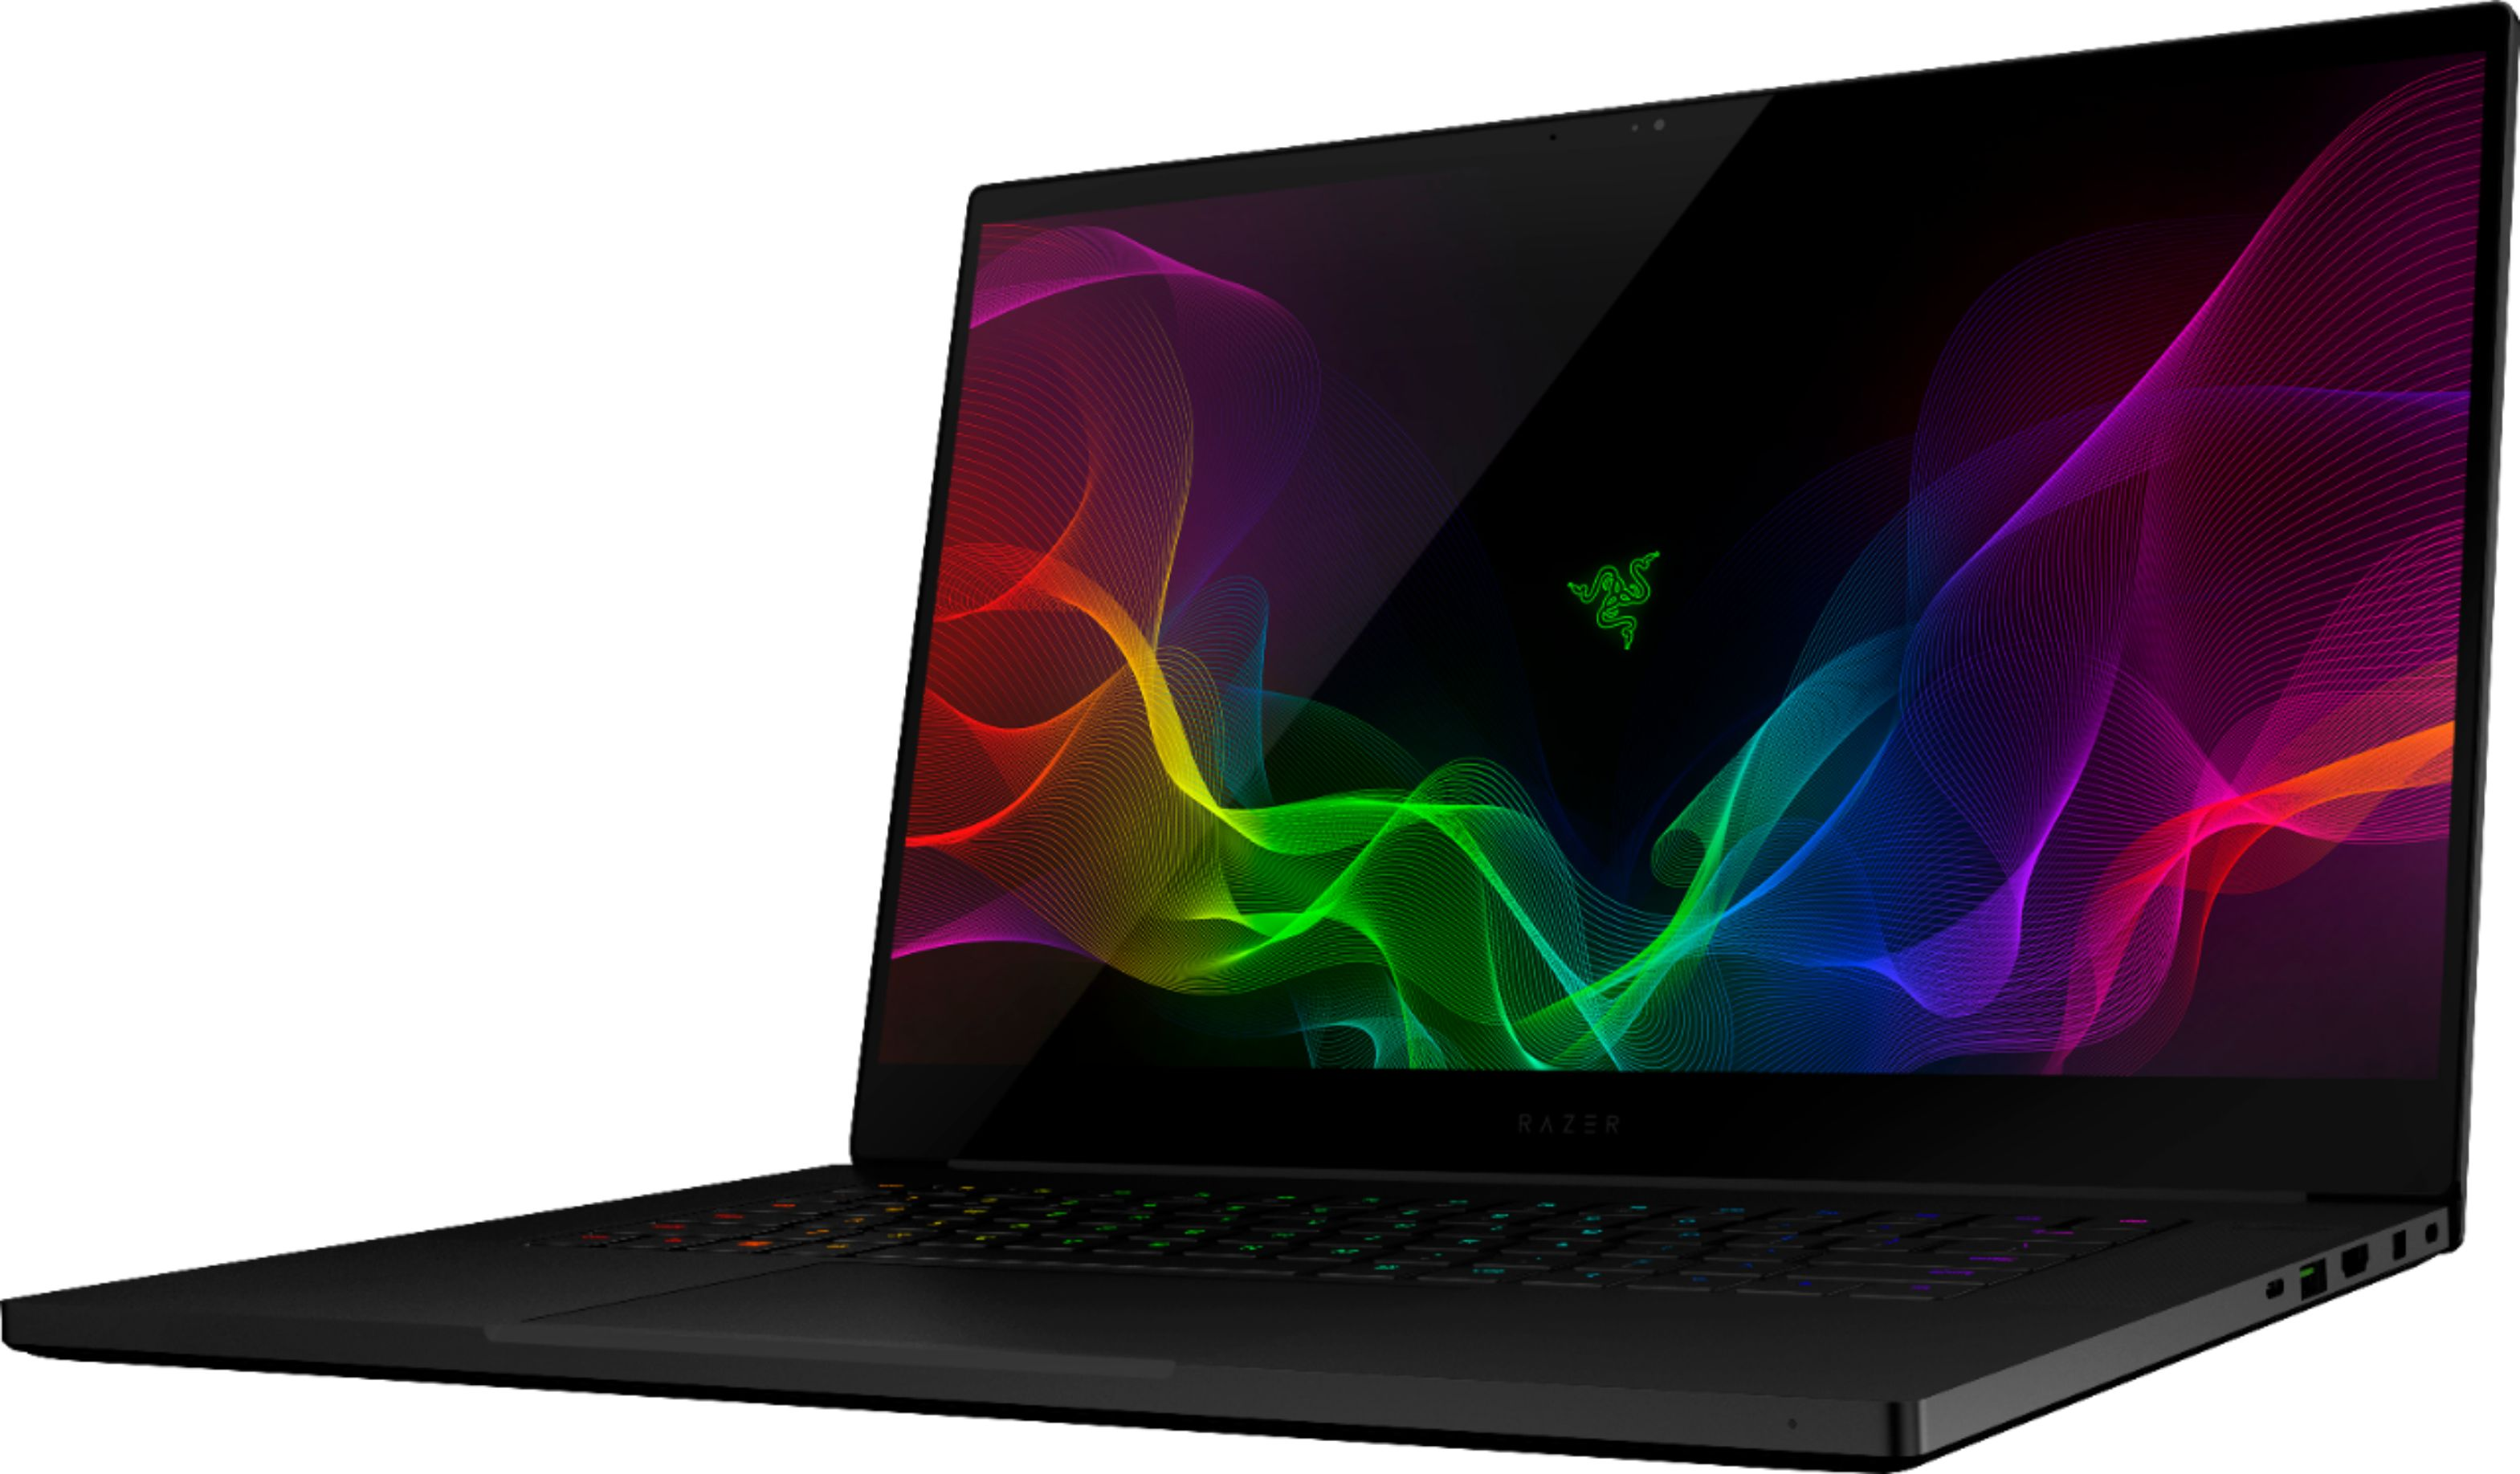 "Left Zoom. Razer - Geek Squad Certified Refurbished 15.6"" Gaming Laptop - Intel Core i7 - 16GB Memory - NVIDIA GeForce GTX 1060 - 512GB SSD - Black CNC Aluminum."